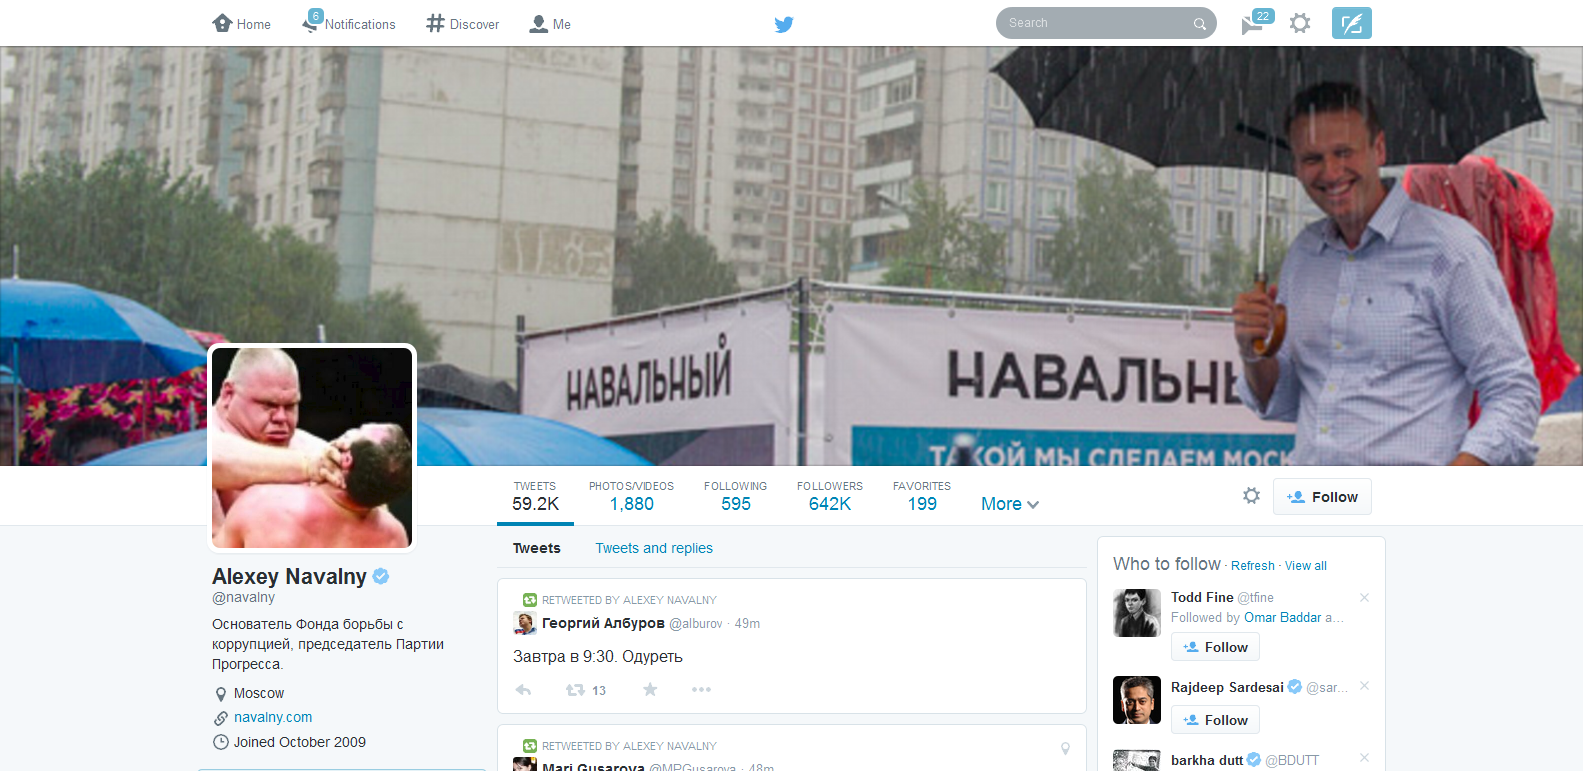 Screenshot of Alexey Navalny's Twitter page.